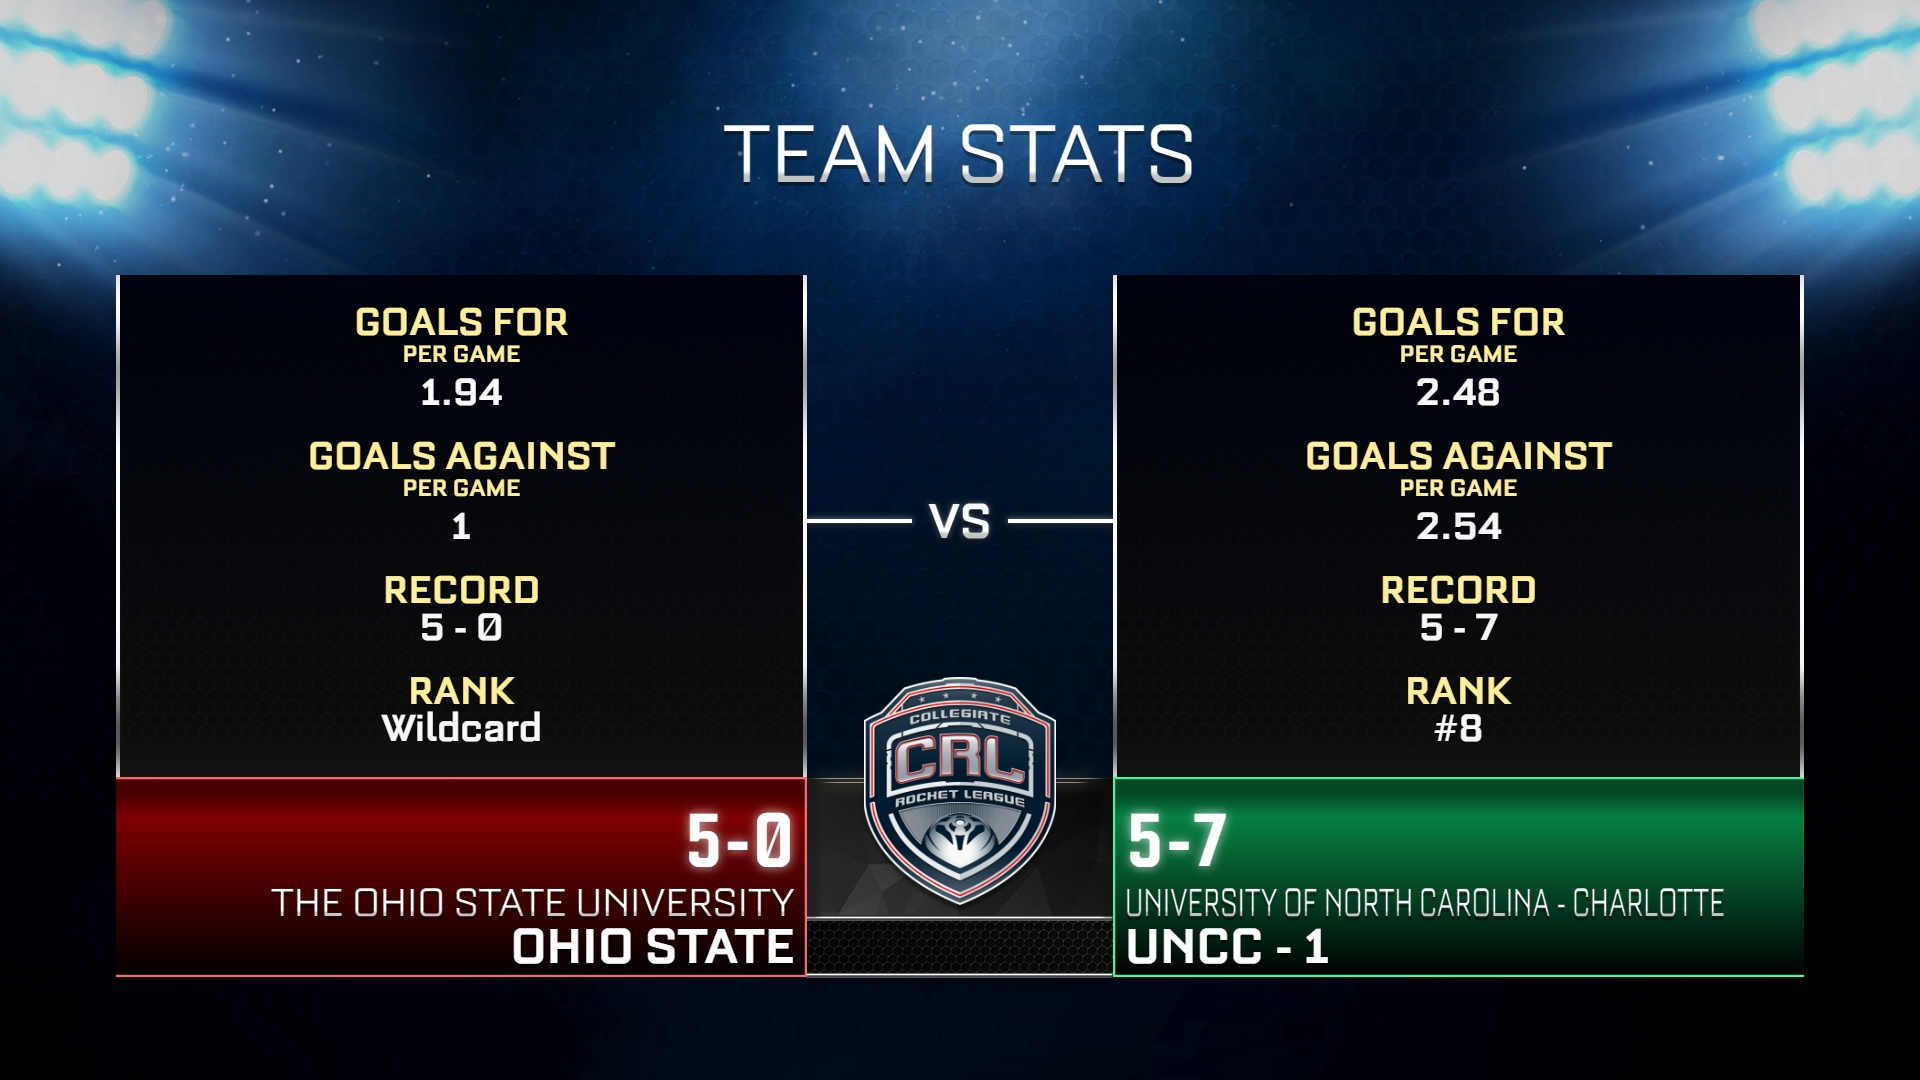 ohio_vs_UNCC.png